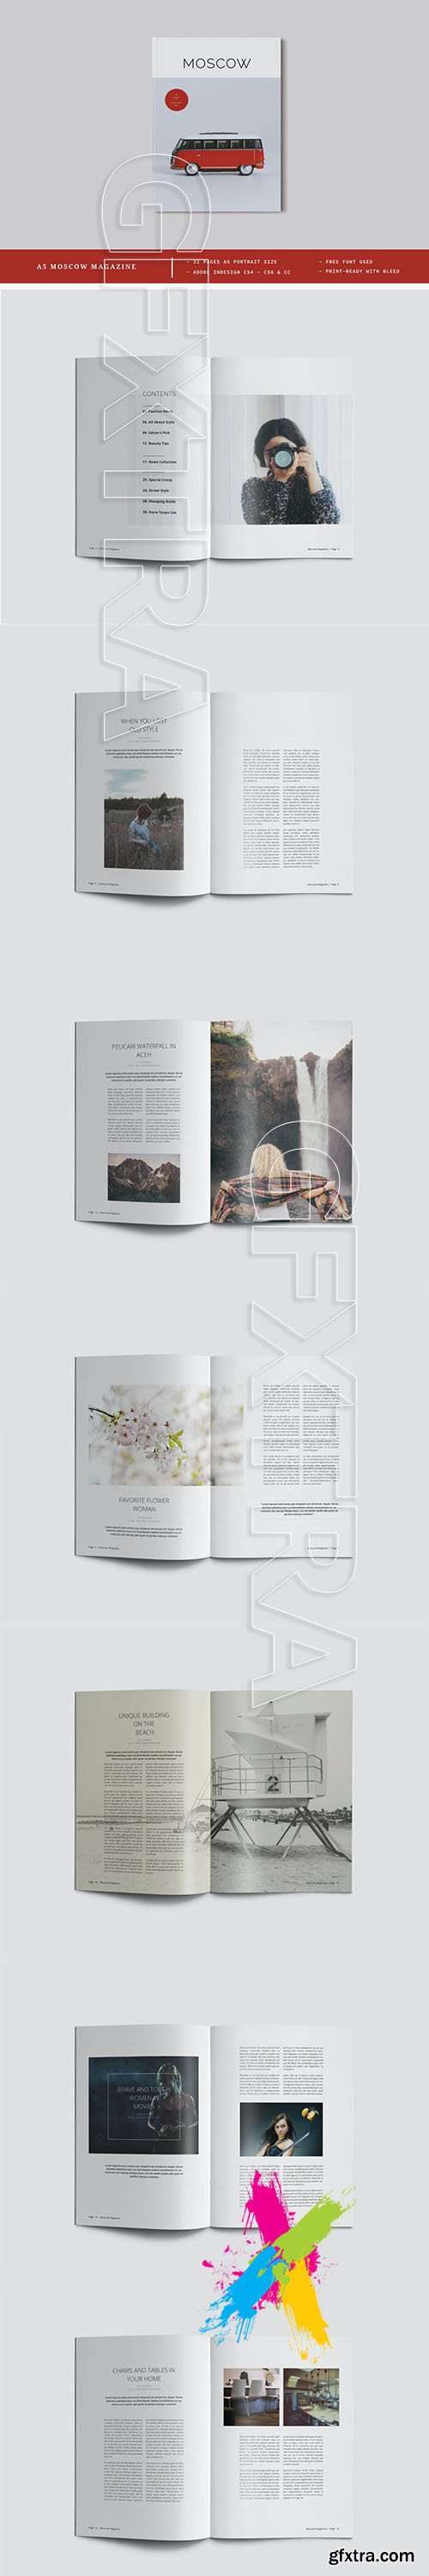 A5 Moscow Magazine